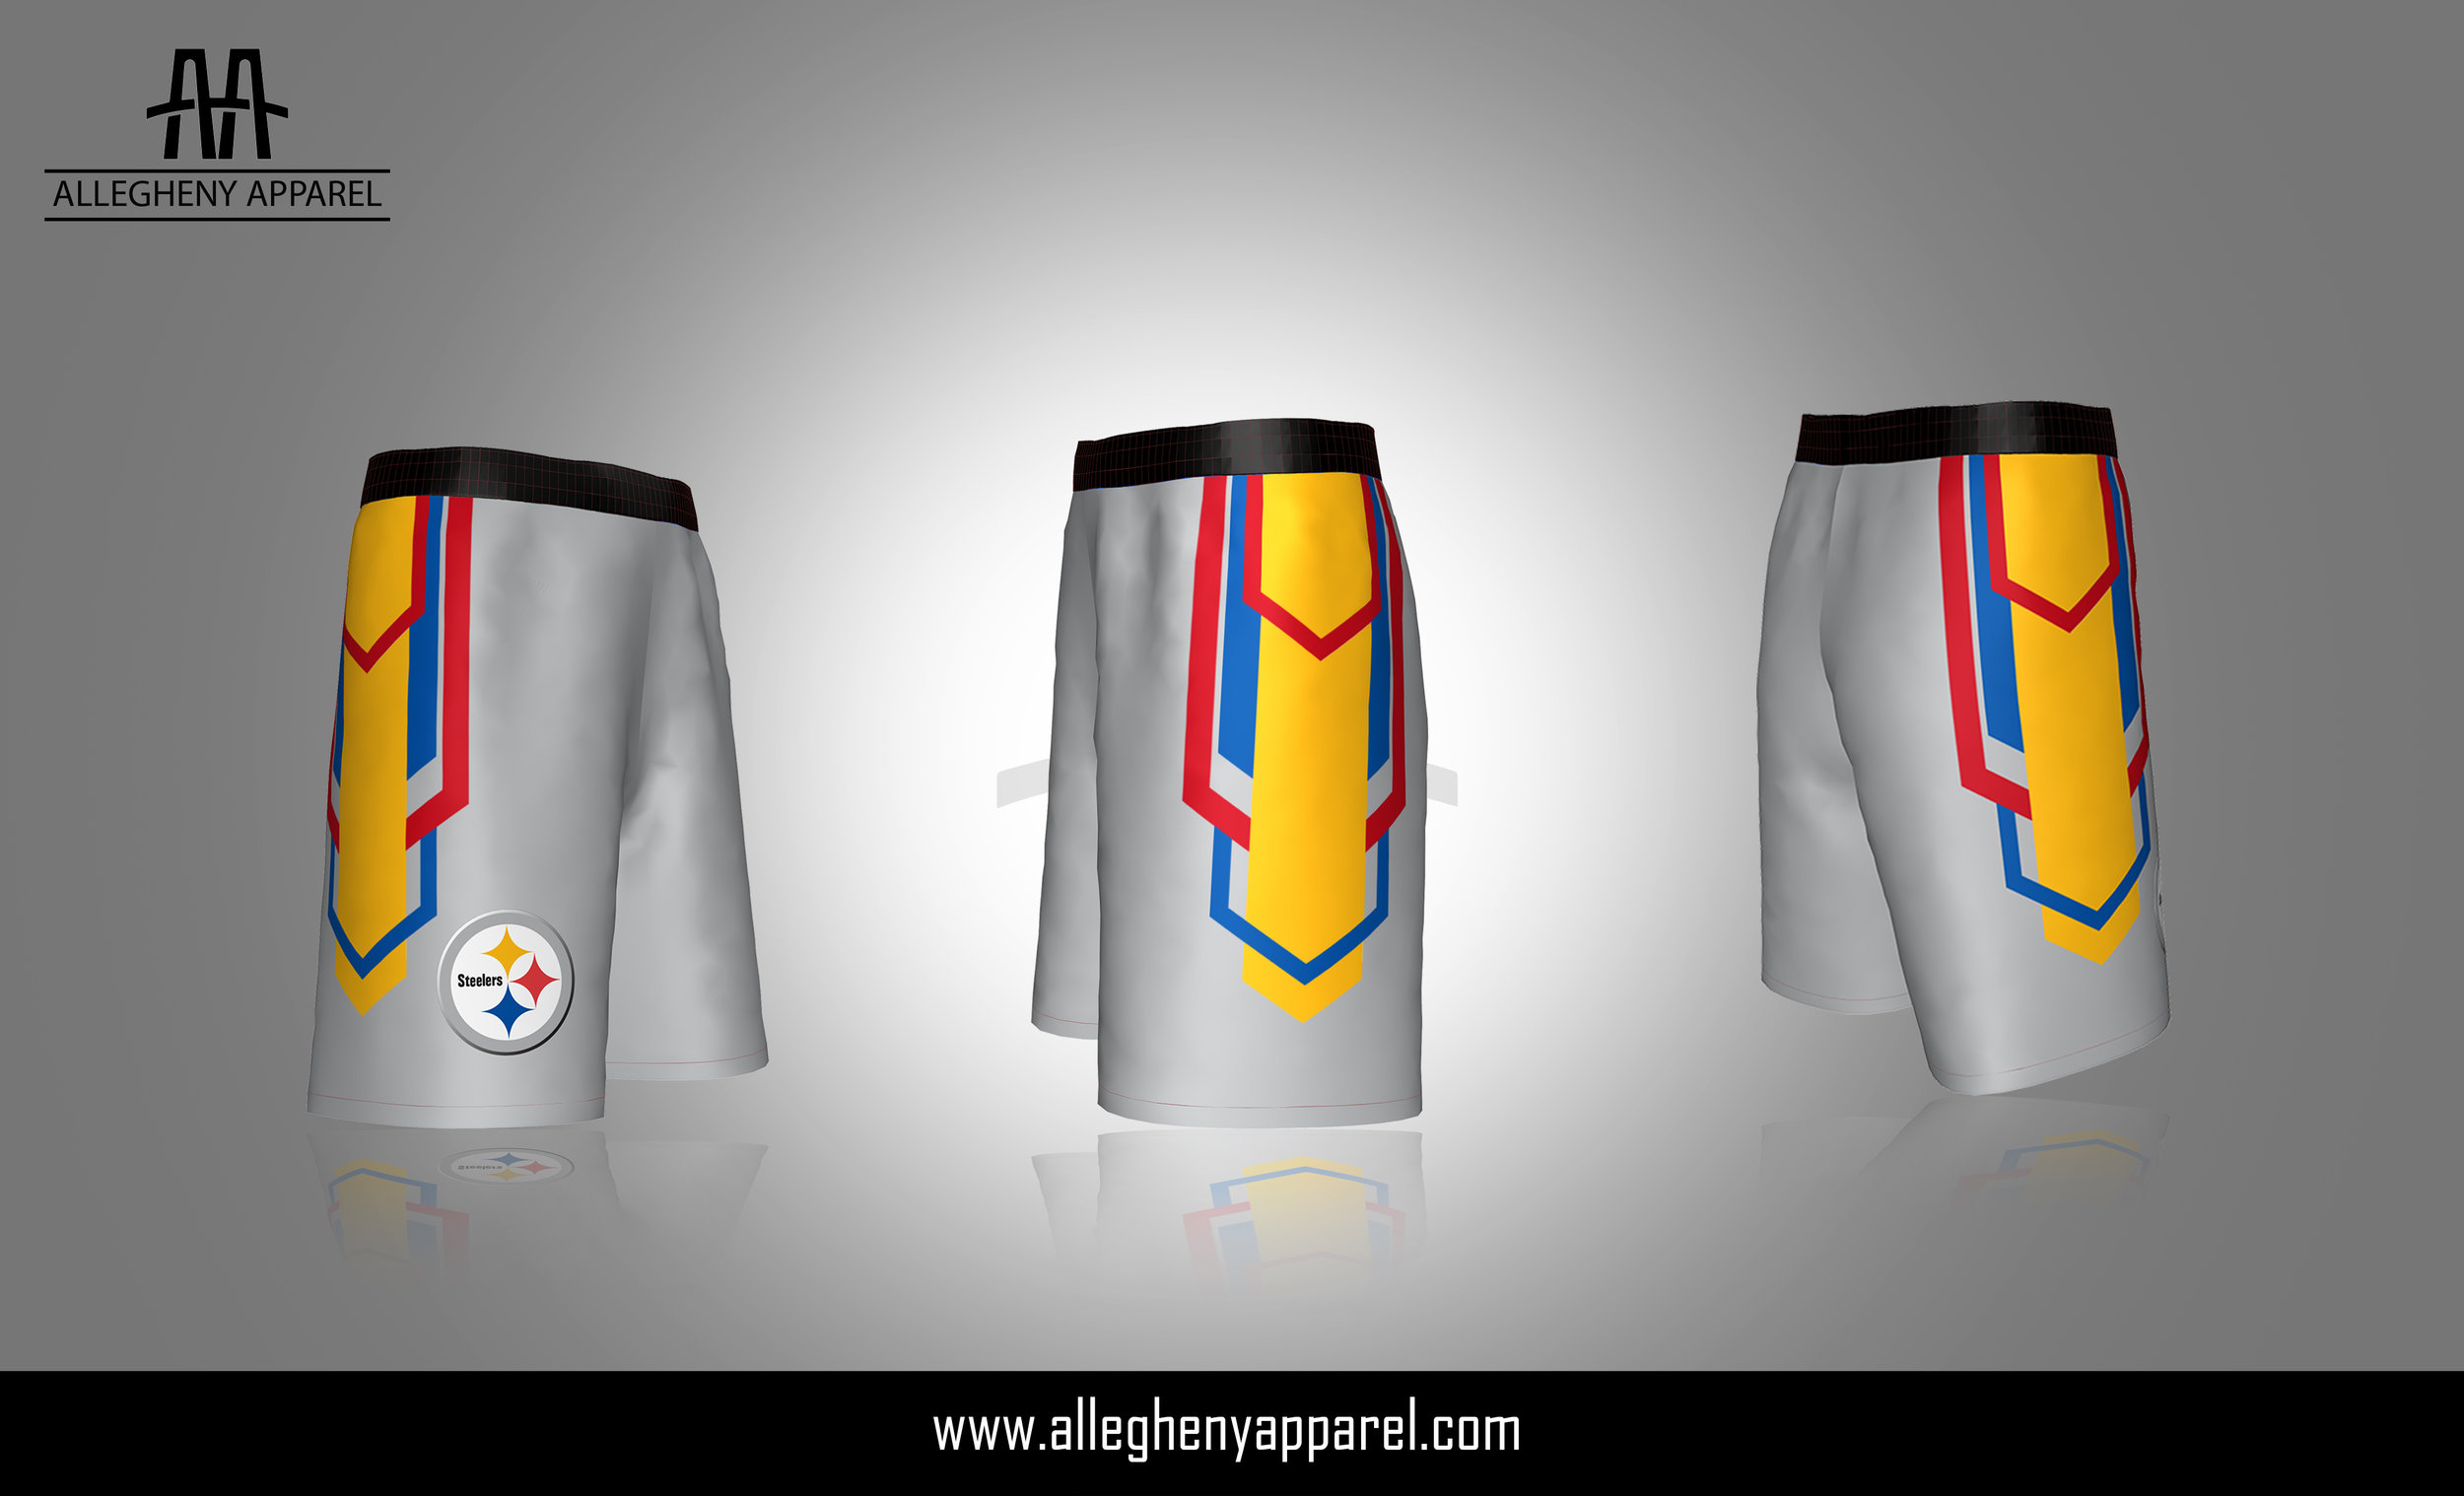 steelers design.jpg